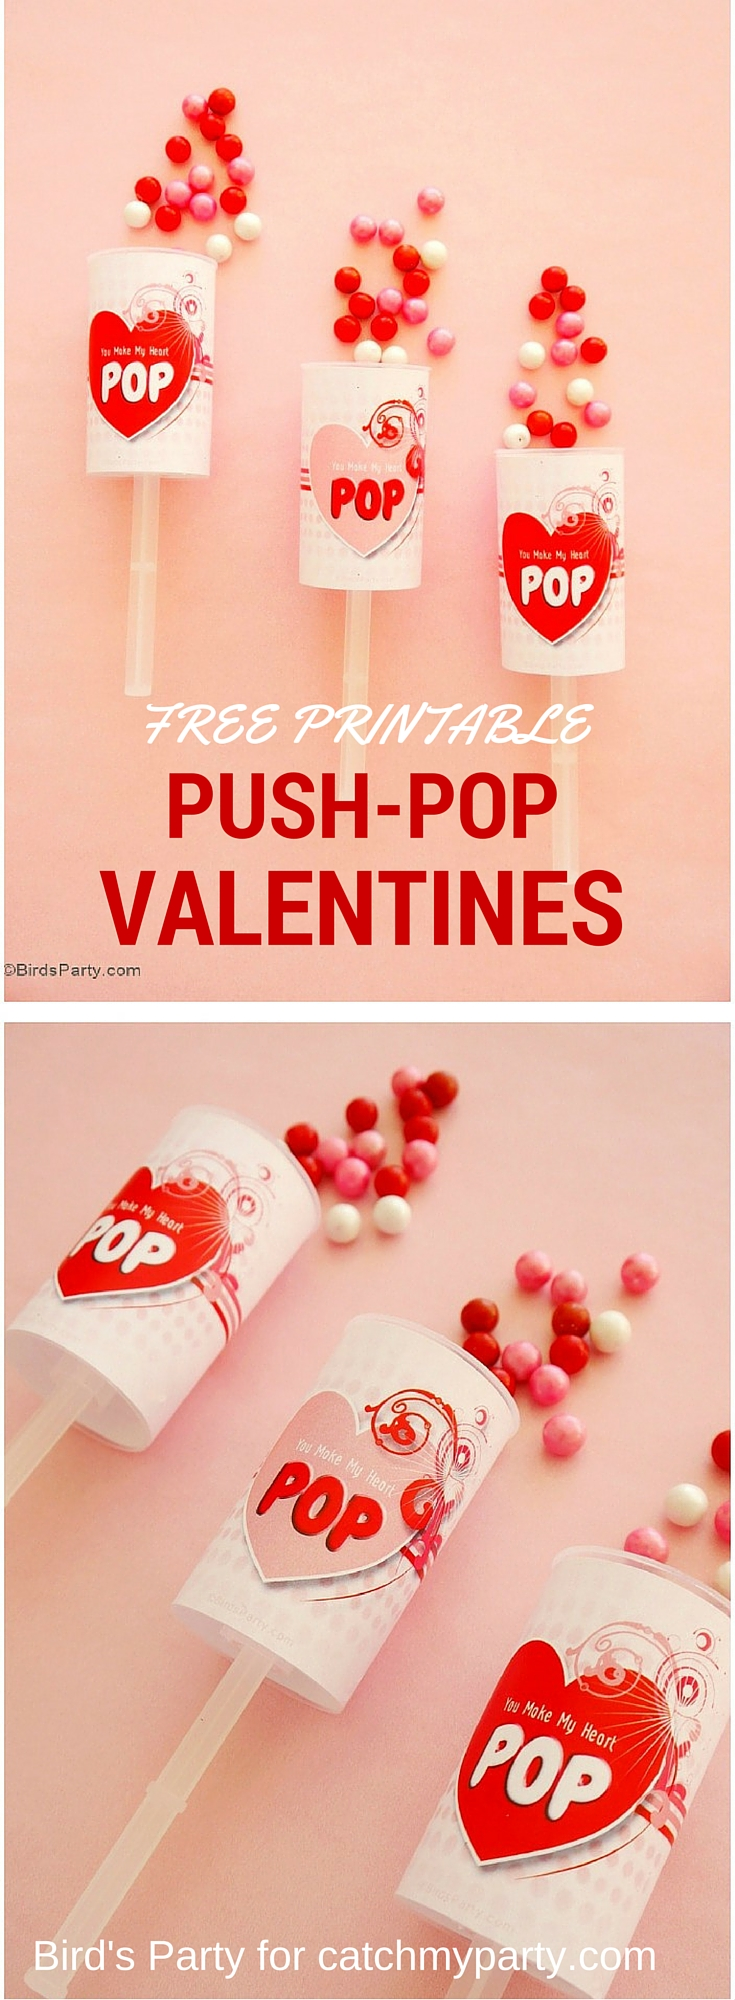 Free Valentine's Day Push Pop Printables